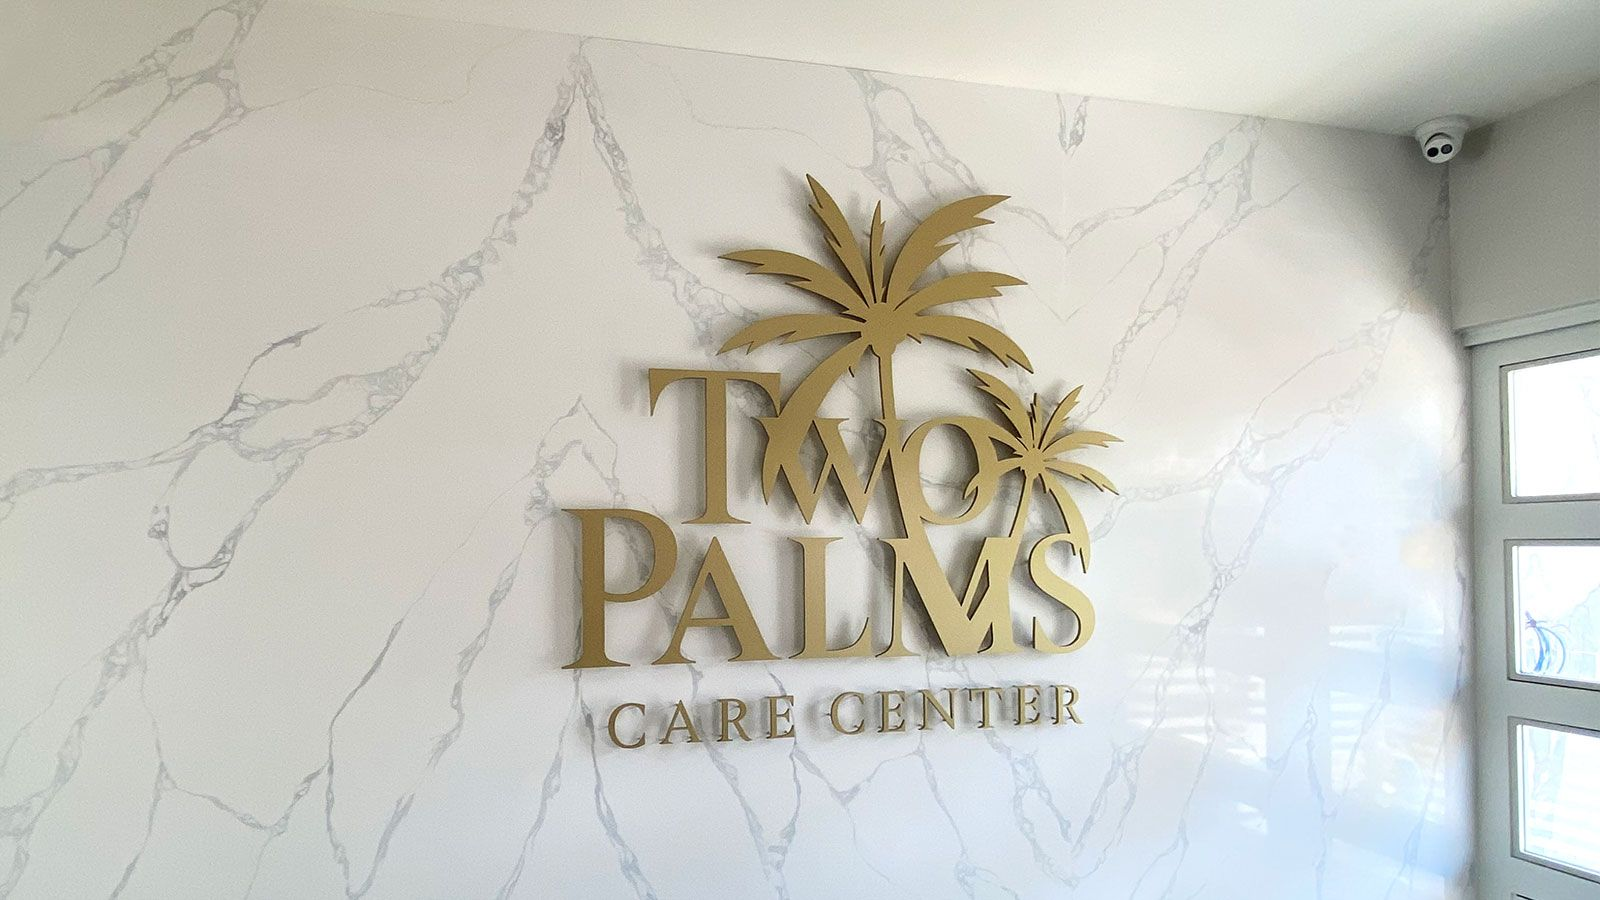 two palms indoor 3D letters